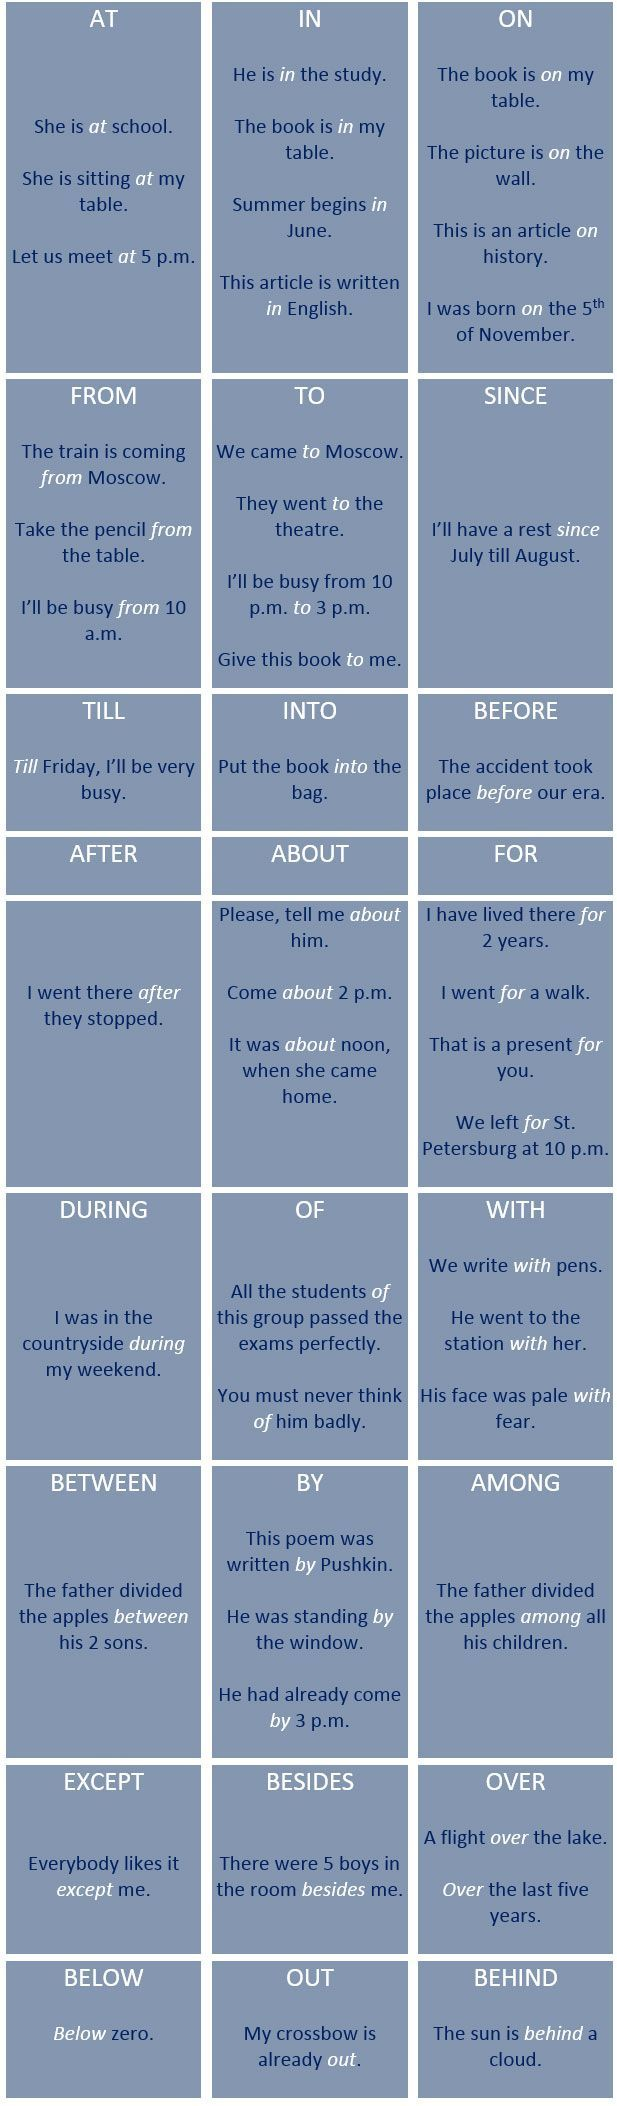 22 best englishh images on Pinterest | English grammar, English ...